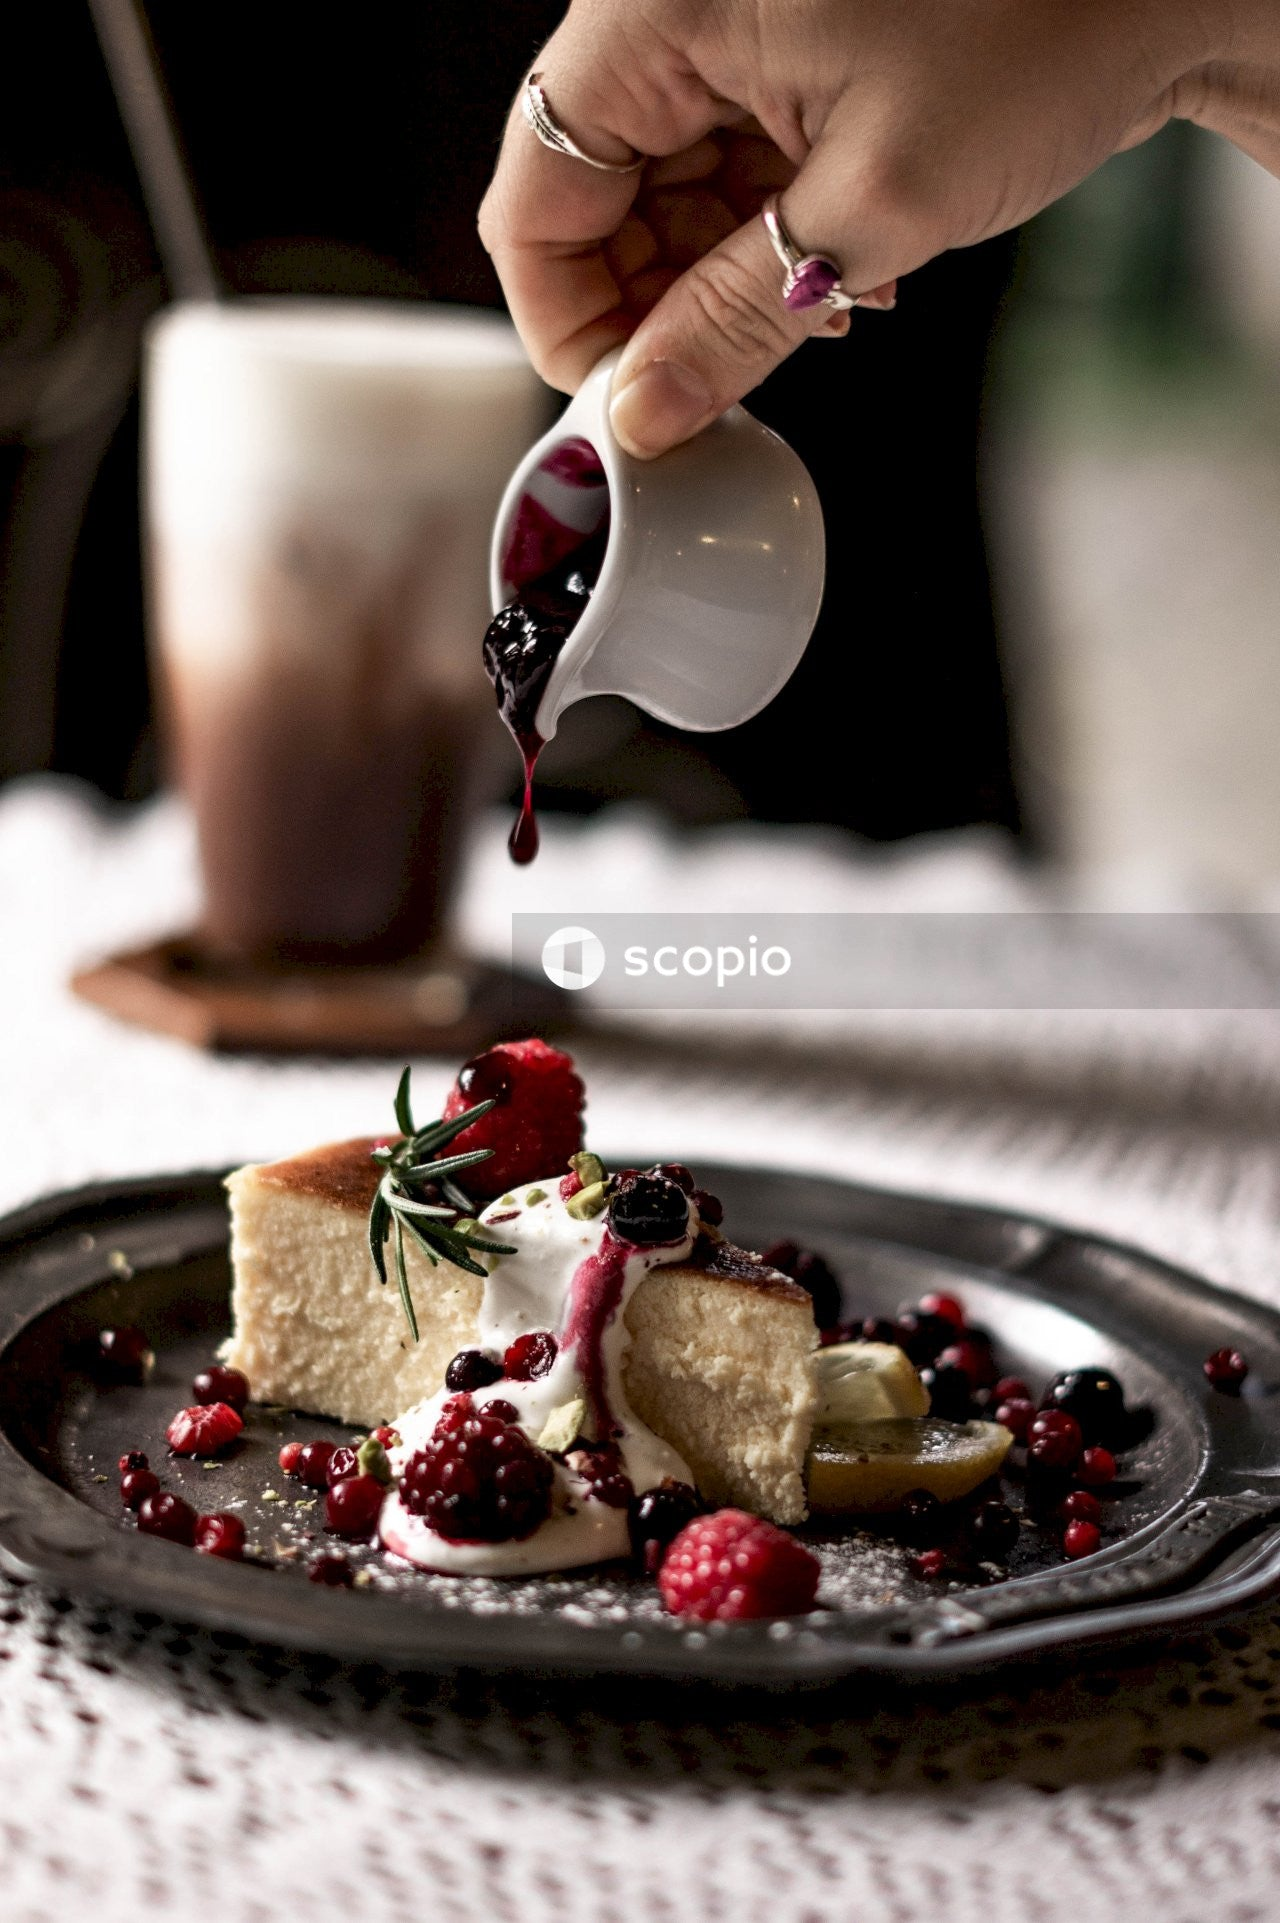 Person pouring red liquid on chocolate cake